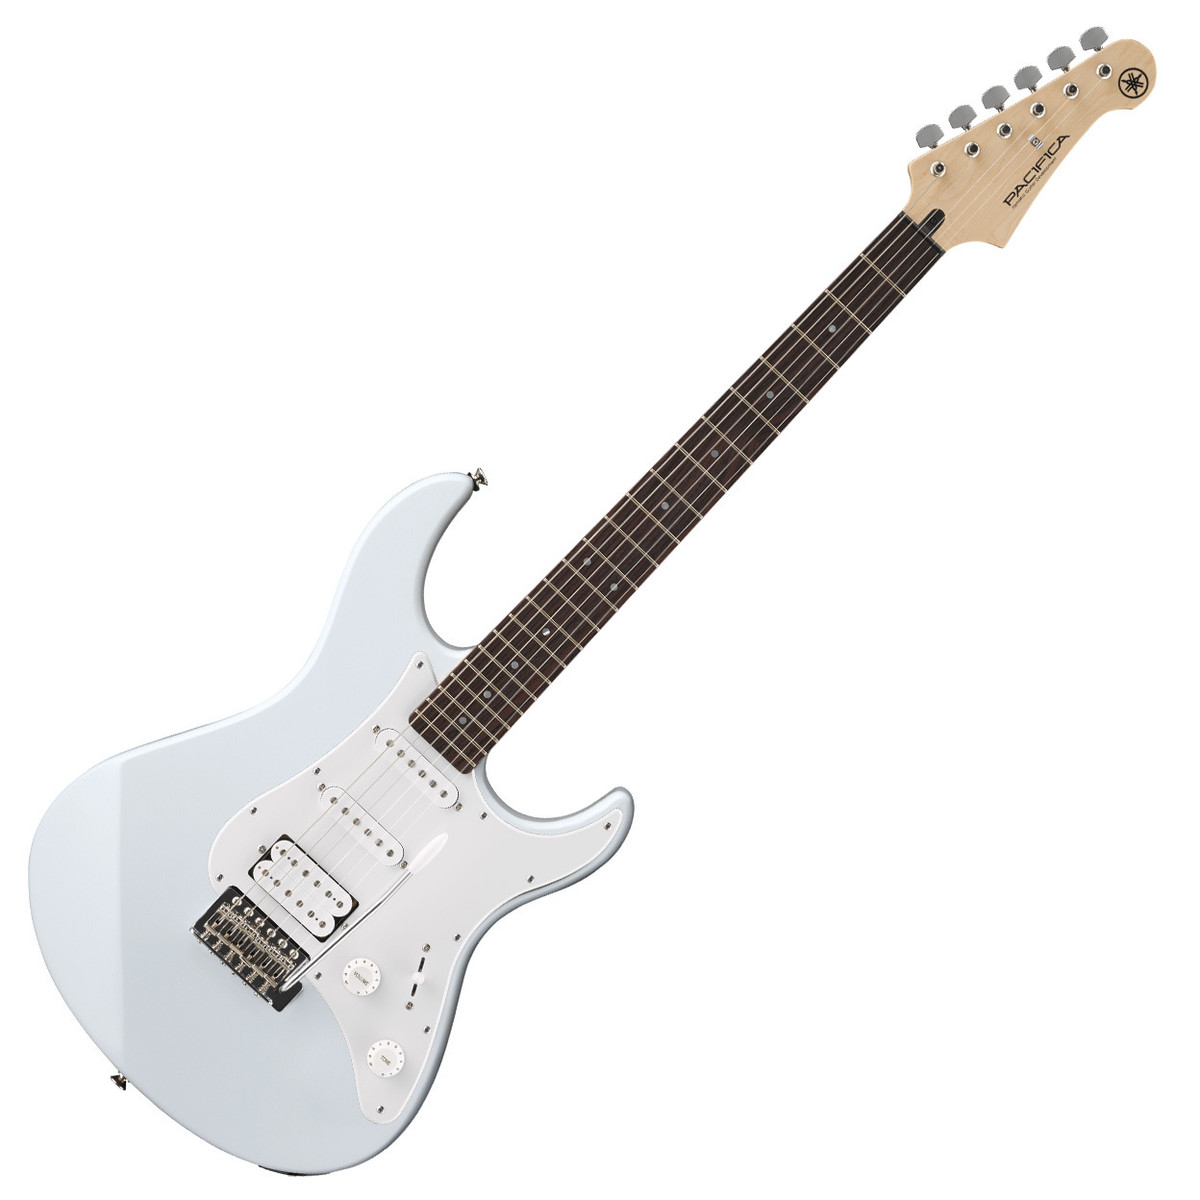 yamaha pacifica. yamaha pacifica 012 pack, vintage white - guitar. loading zoom